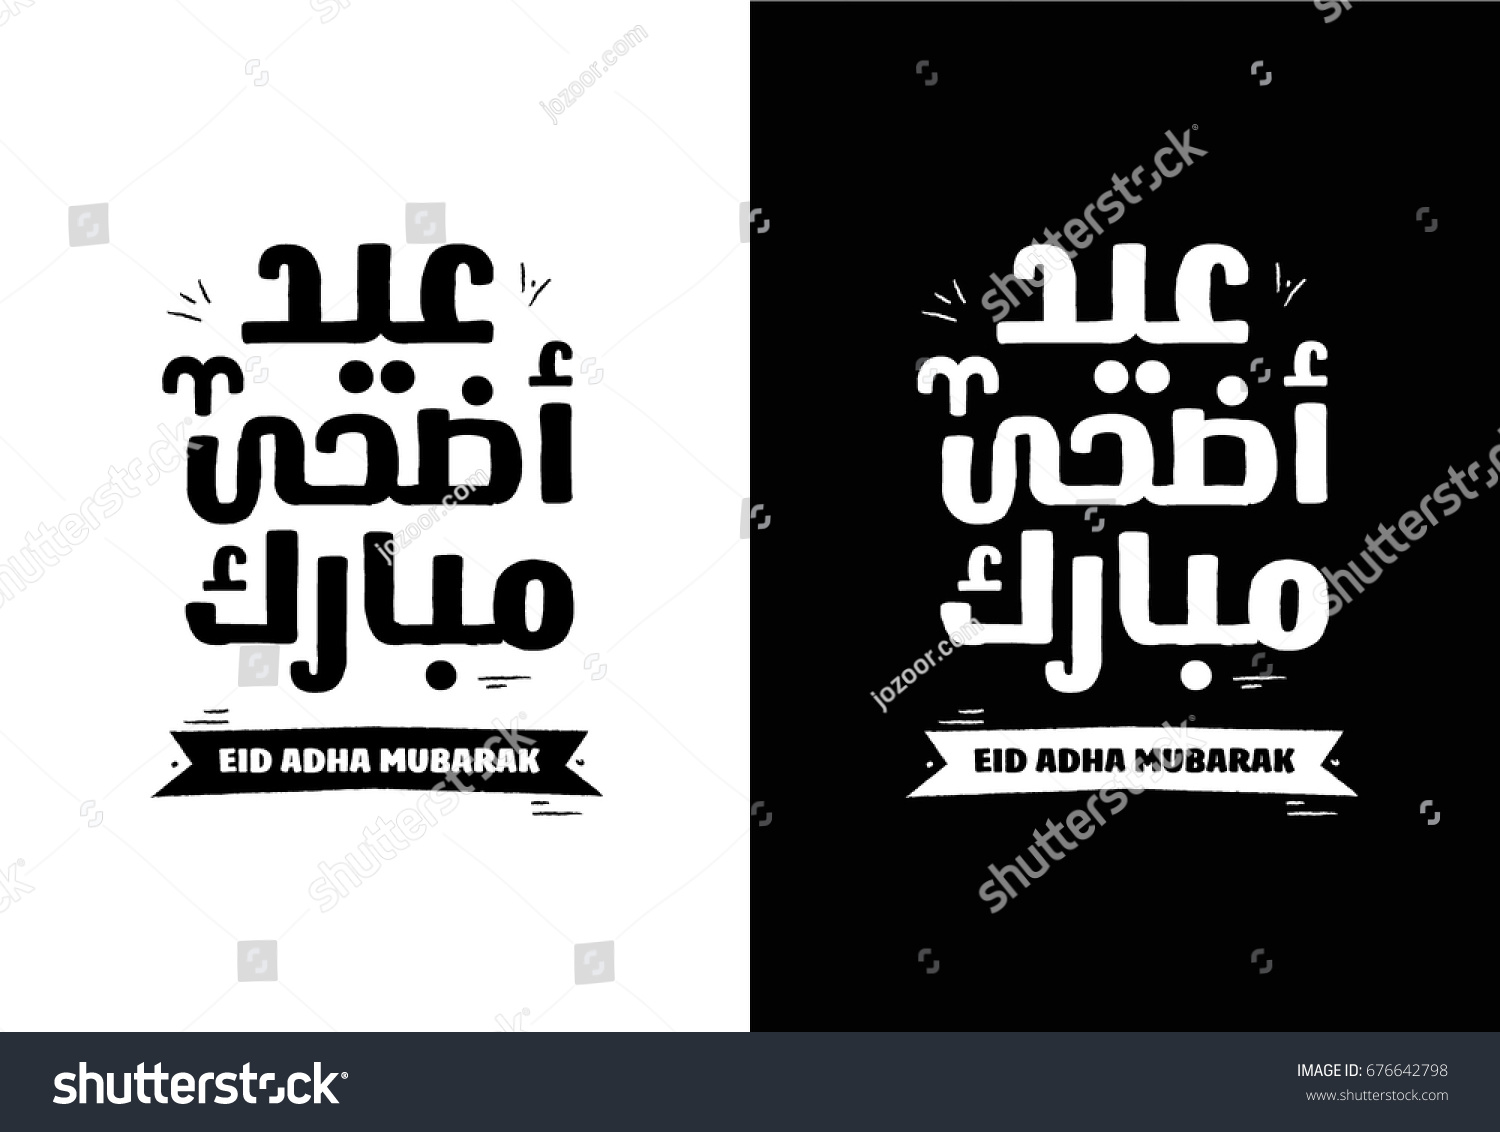 Black and White 'eid adha mubarak' vector calligraphy - Eid al adha Wishes 2017,  Greetings card , Eid Mubarek Cards 2017  #676642798